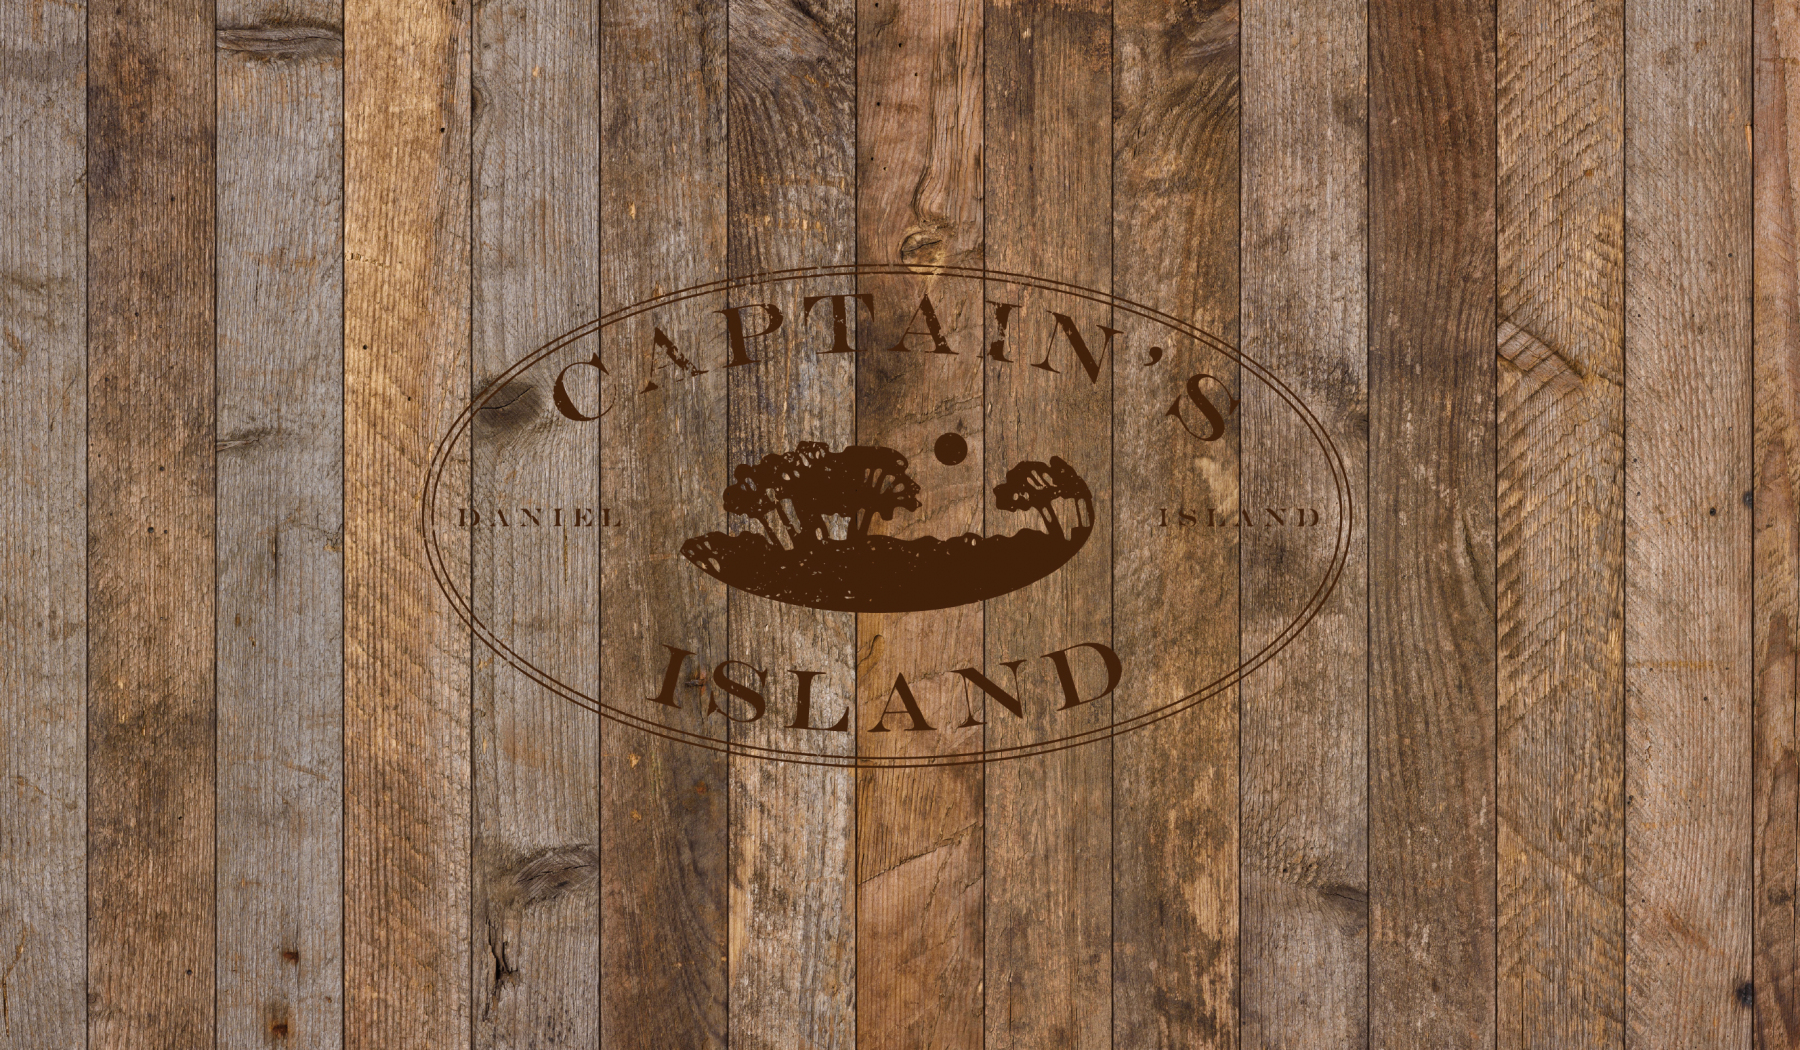 Captains Island